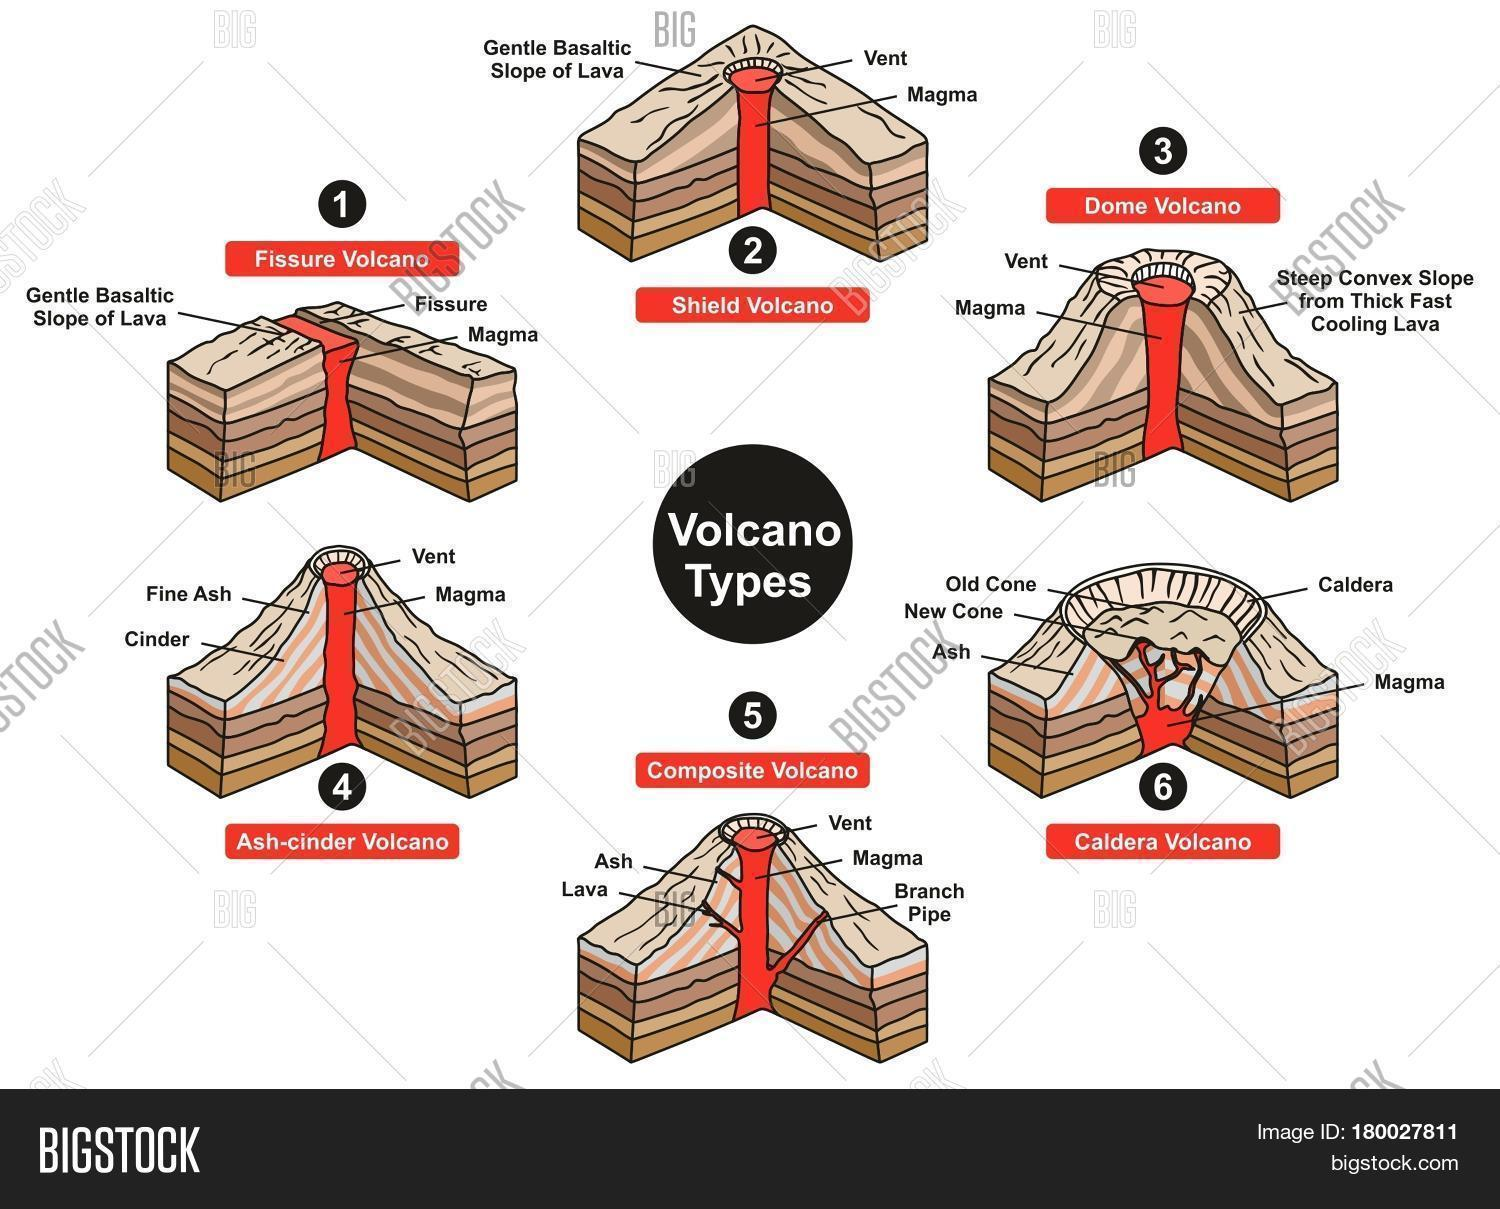 Volcano Types Infographic Diagram Image Amp Photo